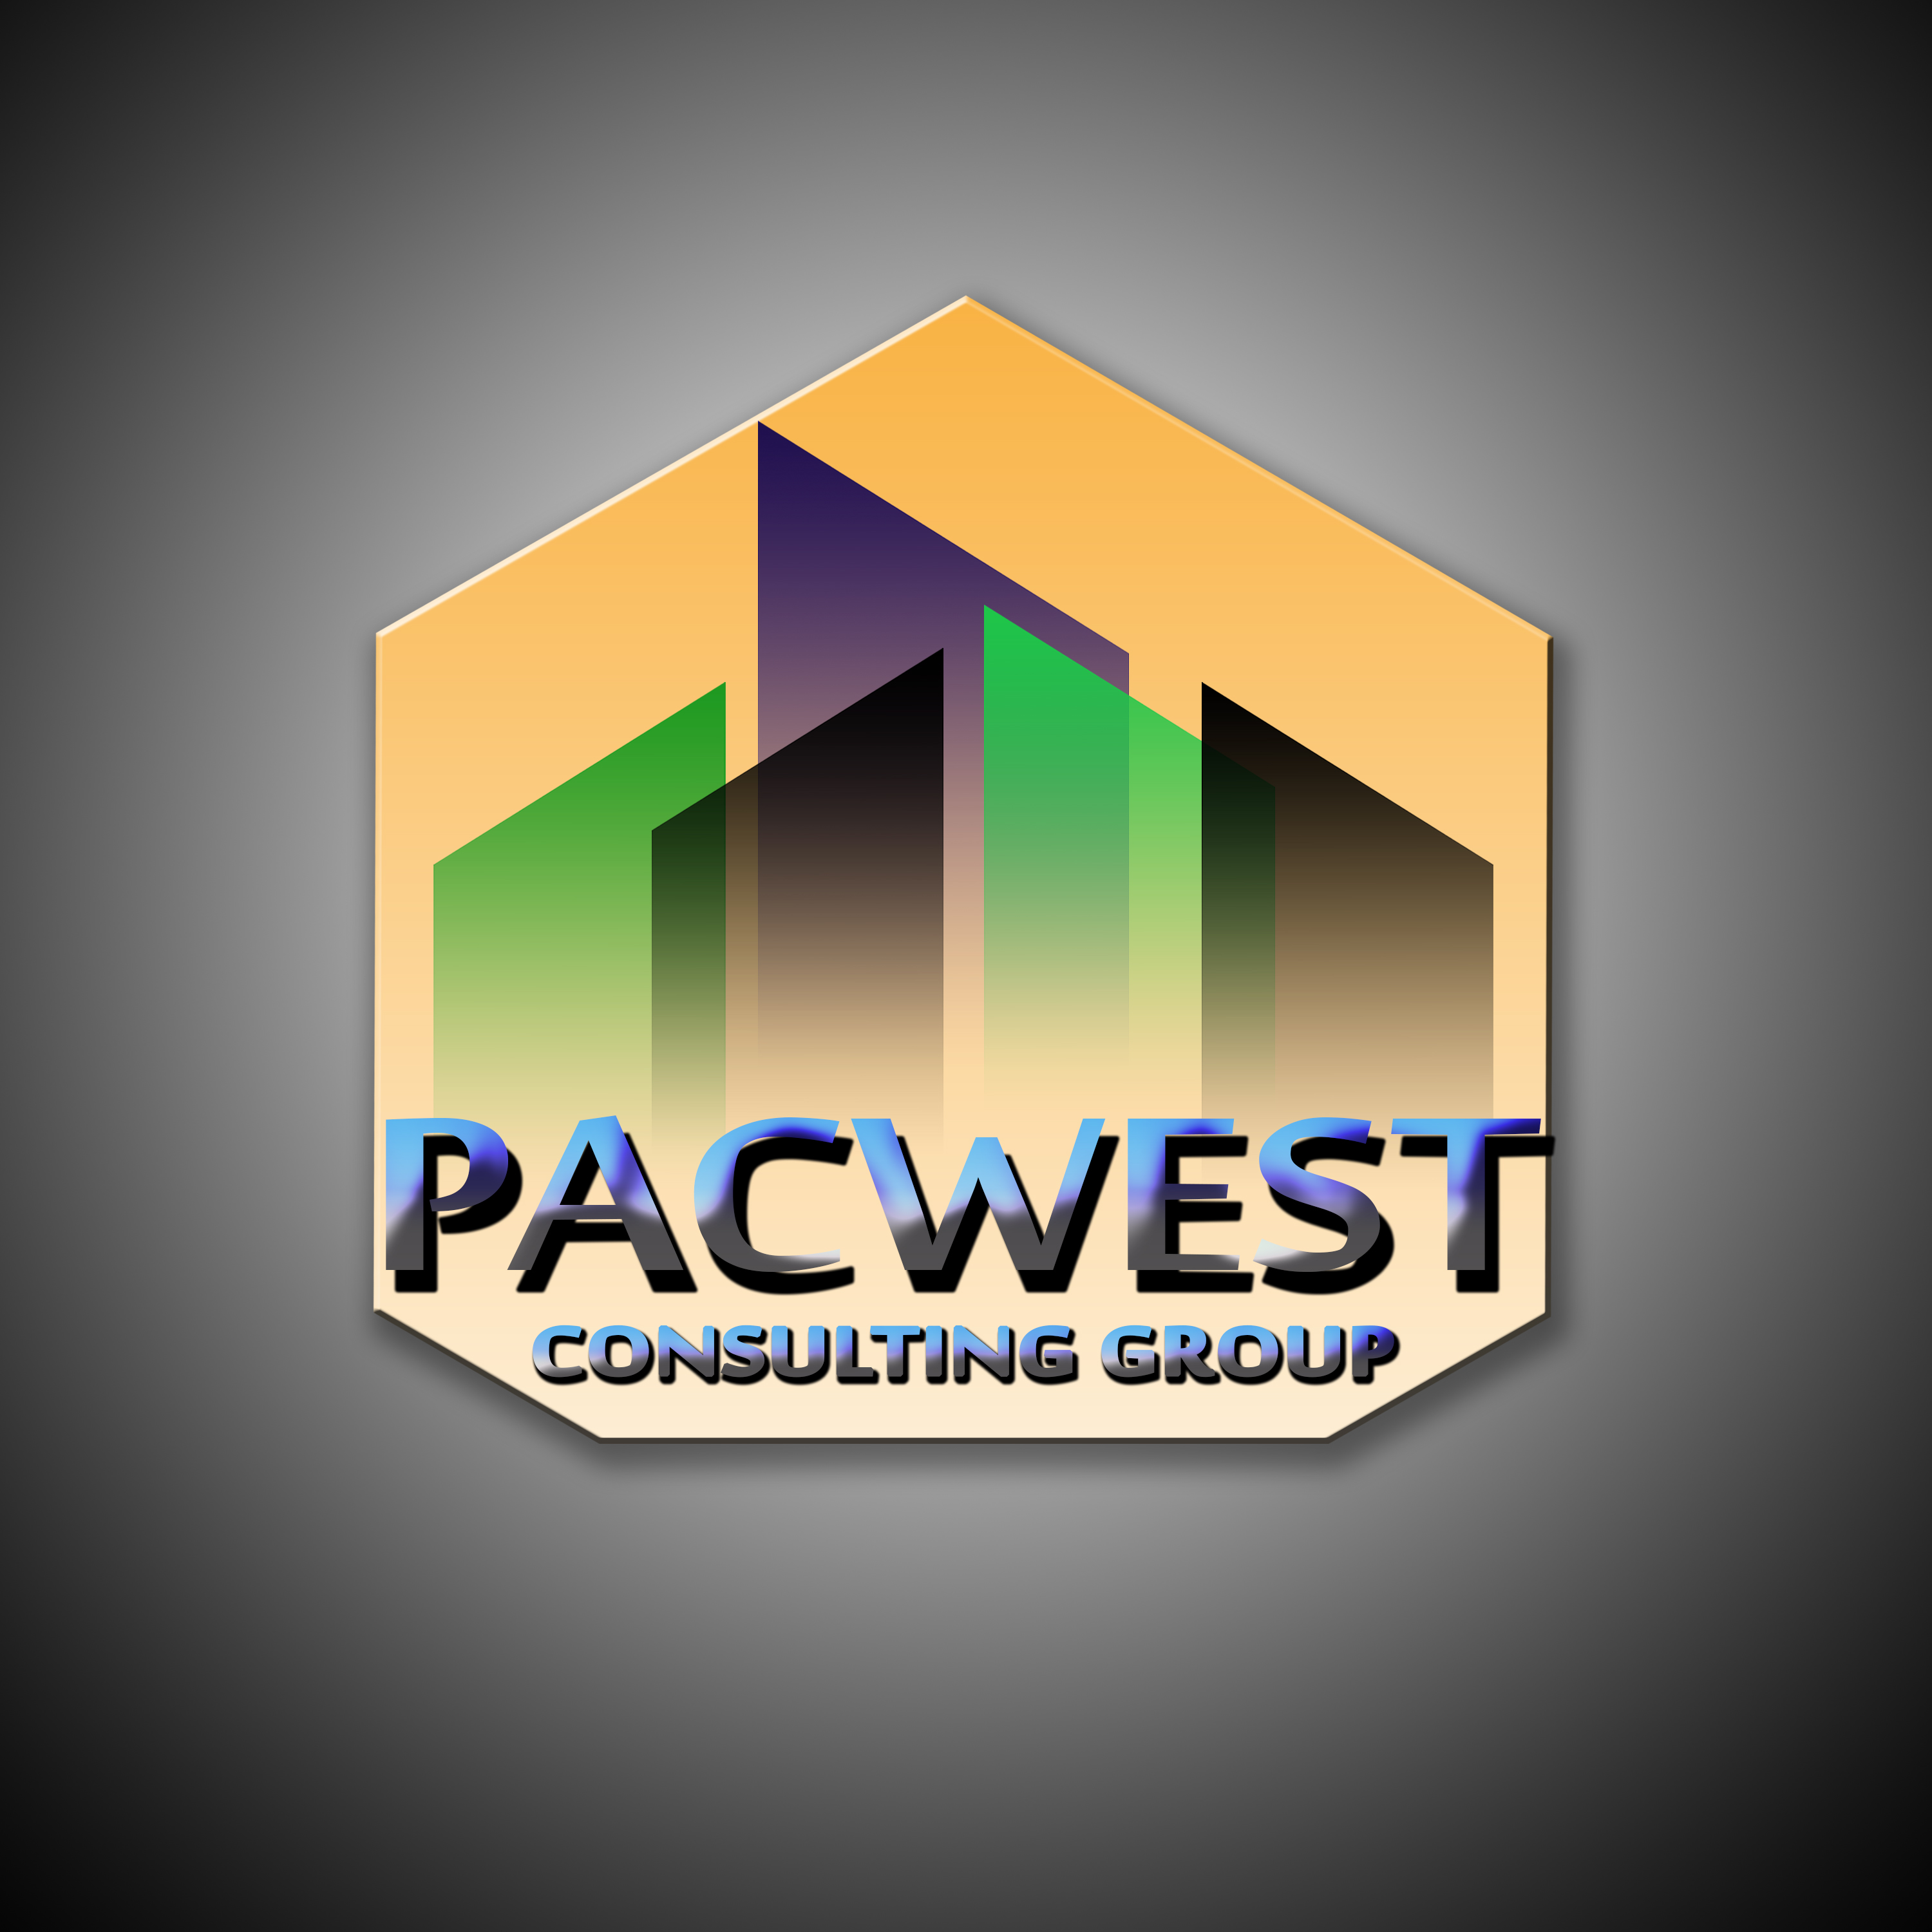 Logo Design by Bolkiah Verdadero - Entry No. 16 in the Logo Design Contest Imaginative Logo Design for Pacwest Consulting Group.